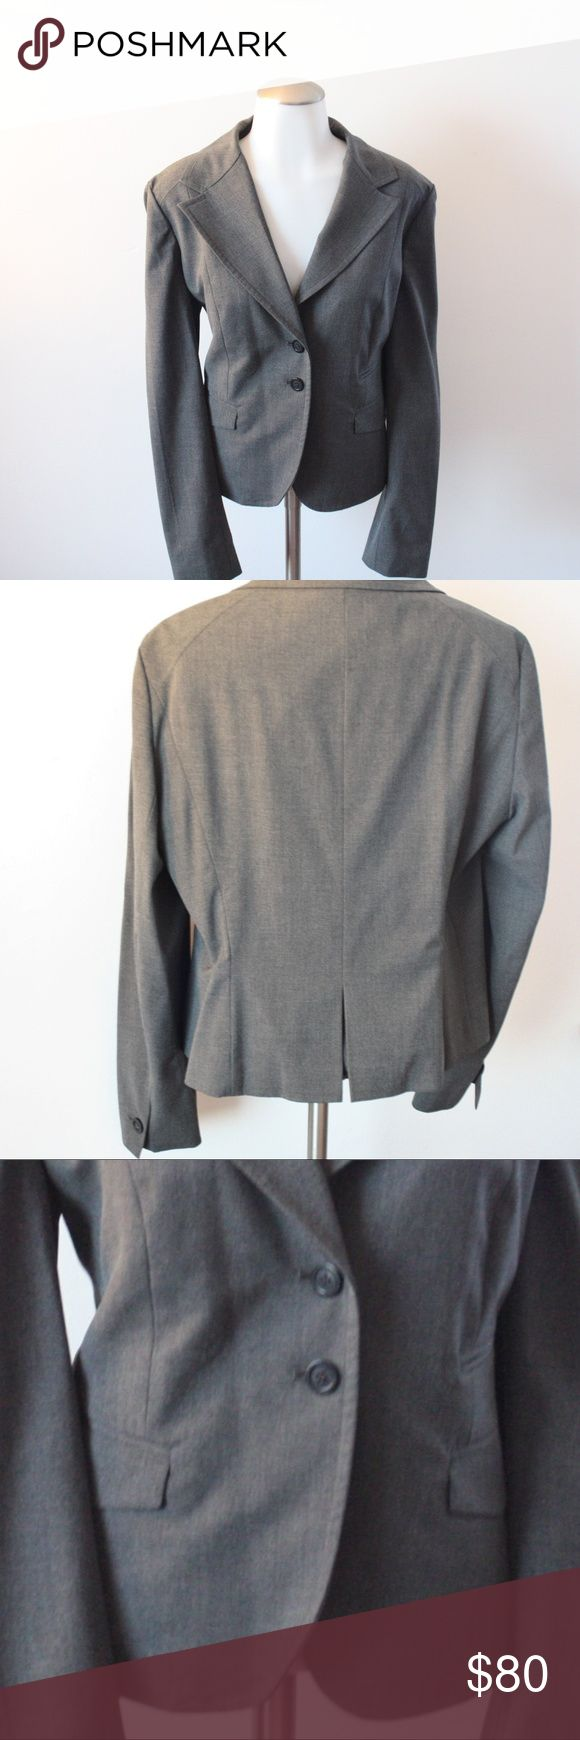 Size 14 Michael Kors Charcoal Gray Blazer Jacket In like new condition! Michael Kors Charcoal Gray Blazer Jacket - Size 14. This beautiful blazer has 2 pleated pockets. Looking at the blazer, the right pocket has another pocket above it that is a half closed (if you want that as a full pocket, it's an easy seam snip!. 2 front buttons & 1 button on each cuff. Curved Blazer. Michael Kors Jackets & Coats Blazers